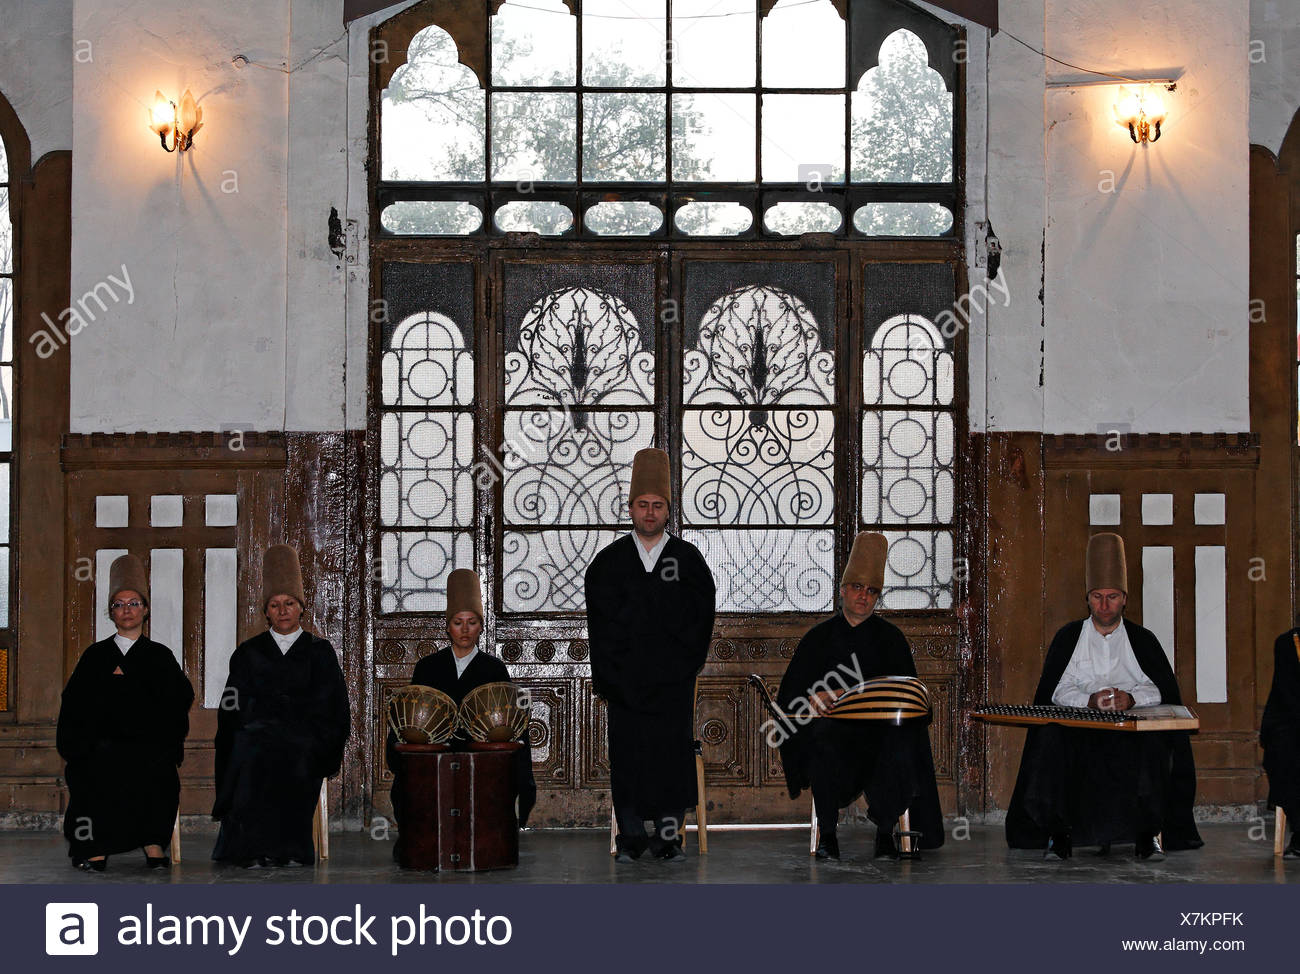 Sufi music group, Sema ceremony of the dancing dervishes of the order of Mevlevi, historic train station Sirkeci, Istanbul, Tur Stock Photo